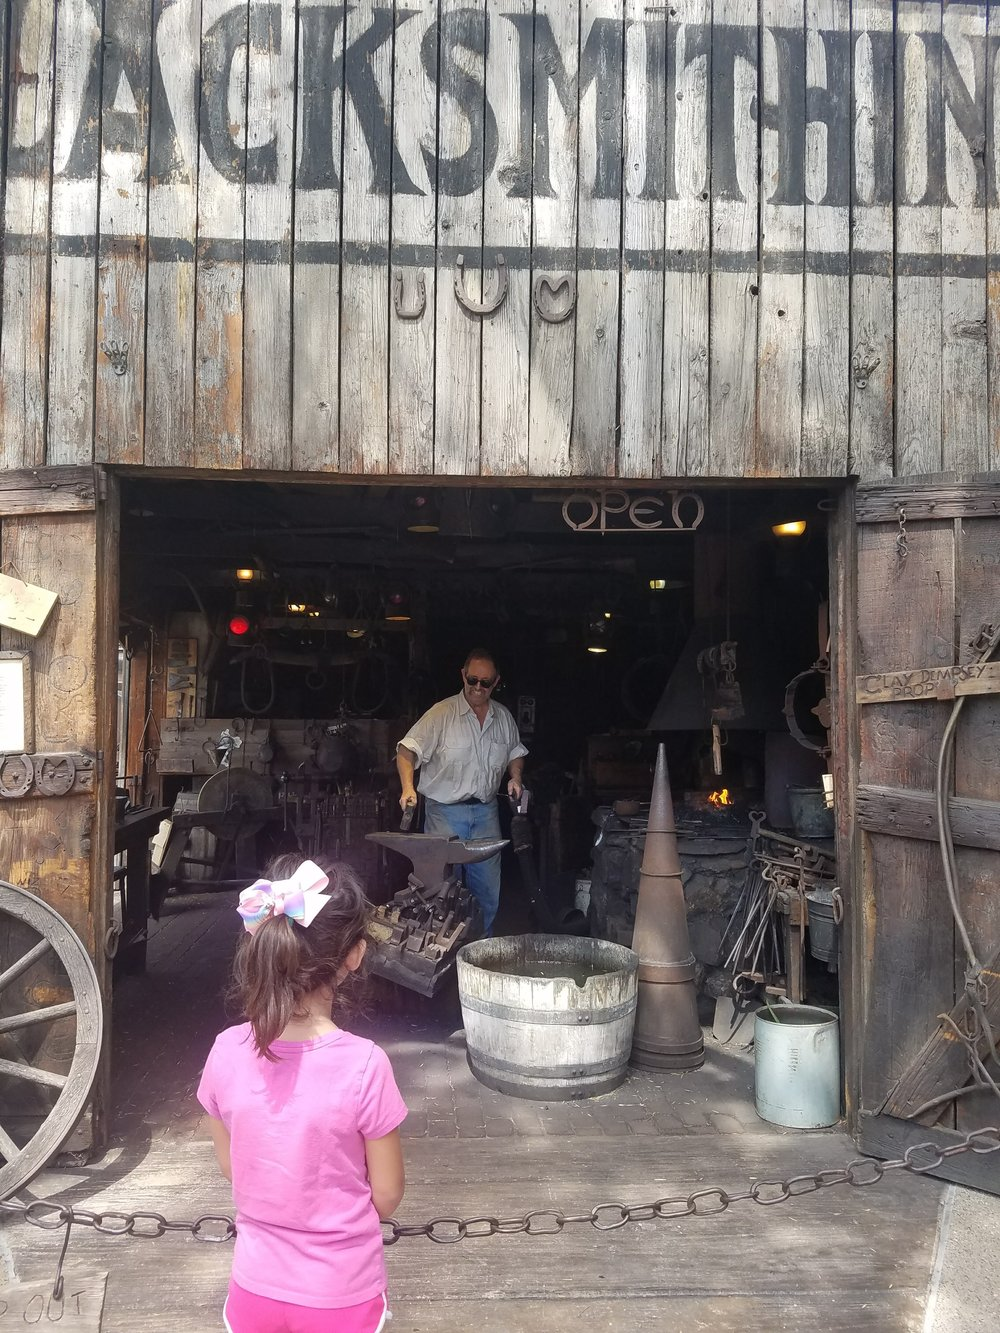 Taking in the local blacksmith.